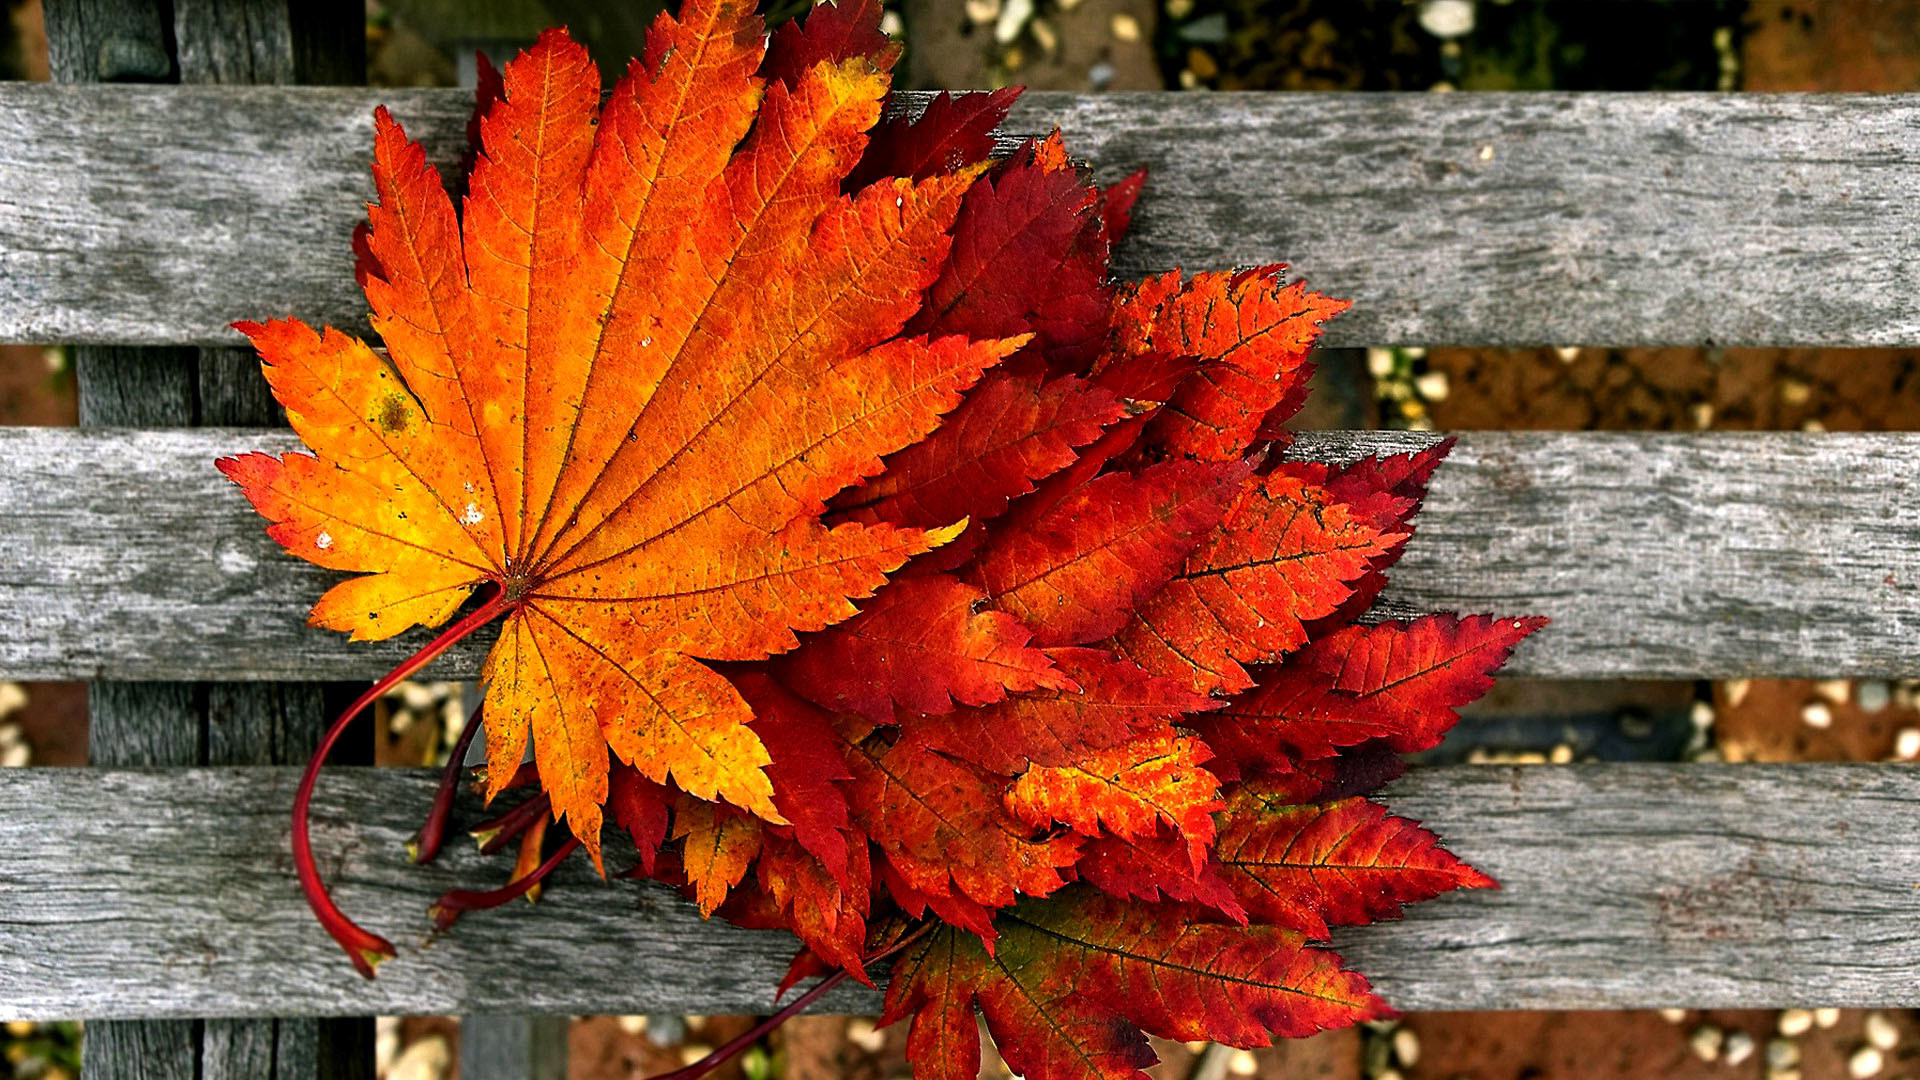 Fall Flowers And Pumpkins Wallpaper 1920x1080 Hd Autumn Wallpapers 61 Images